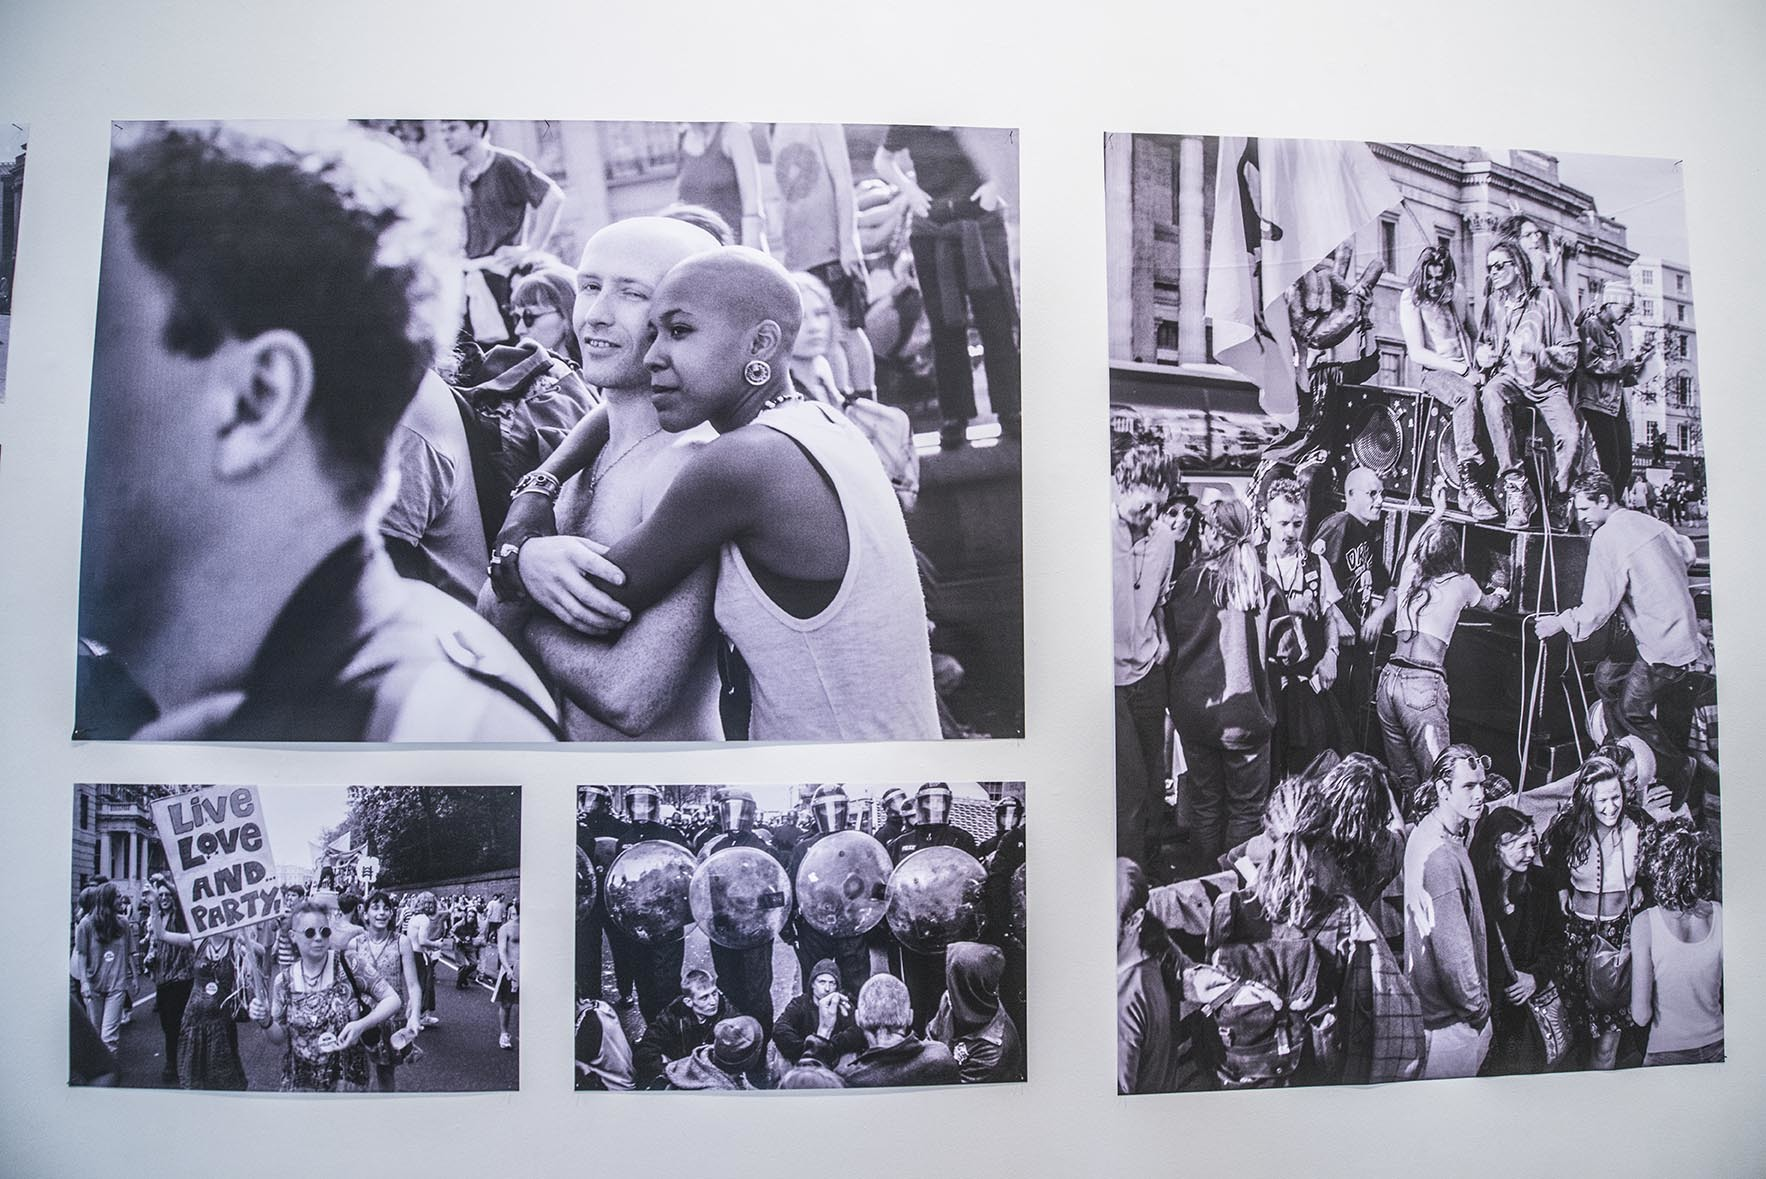 Saatchi gallery art photography counterculture on wall